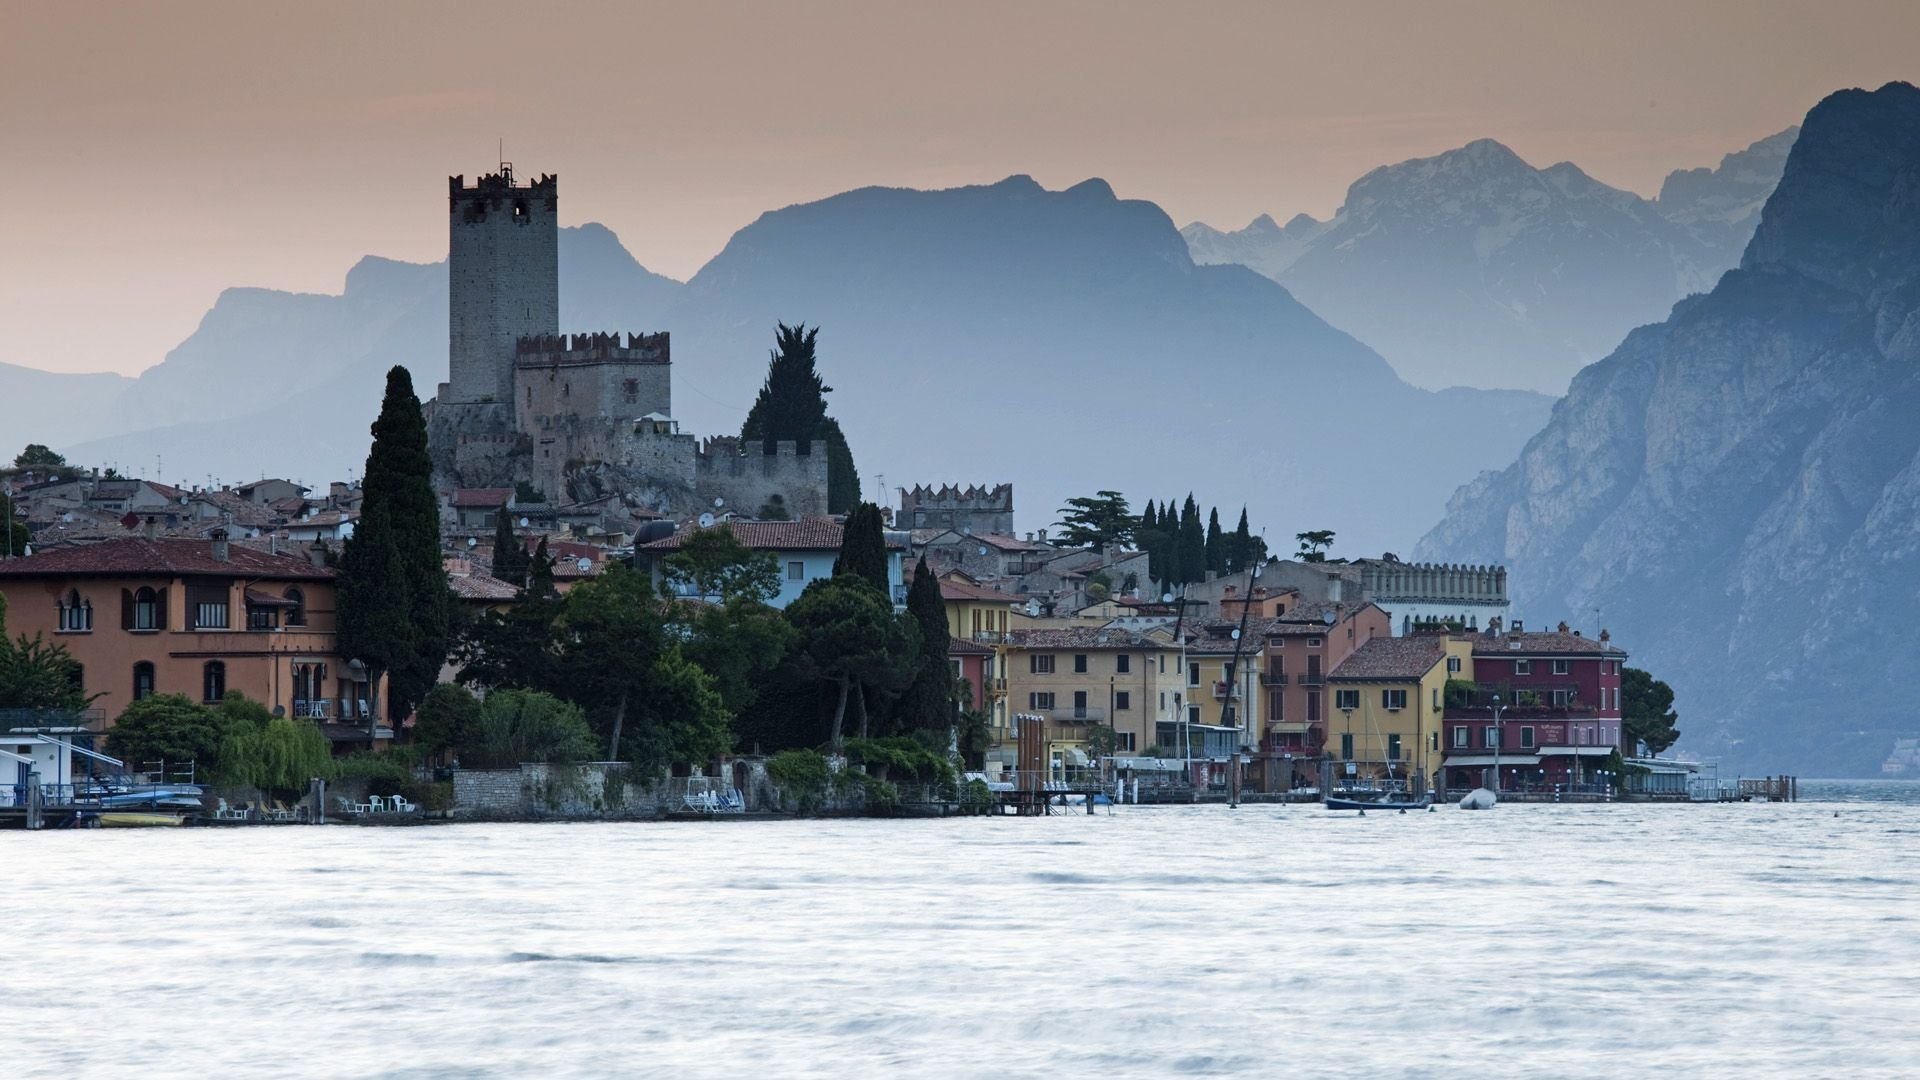 4k Wallpaper 3d National Geographic Download Lake Garda Wallpaper Gallery